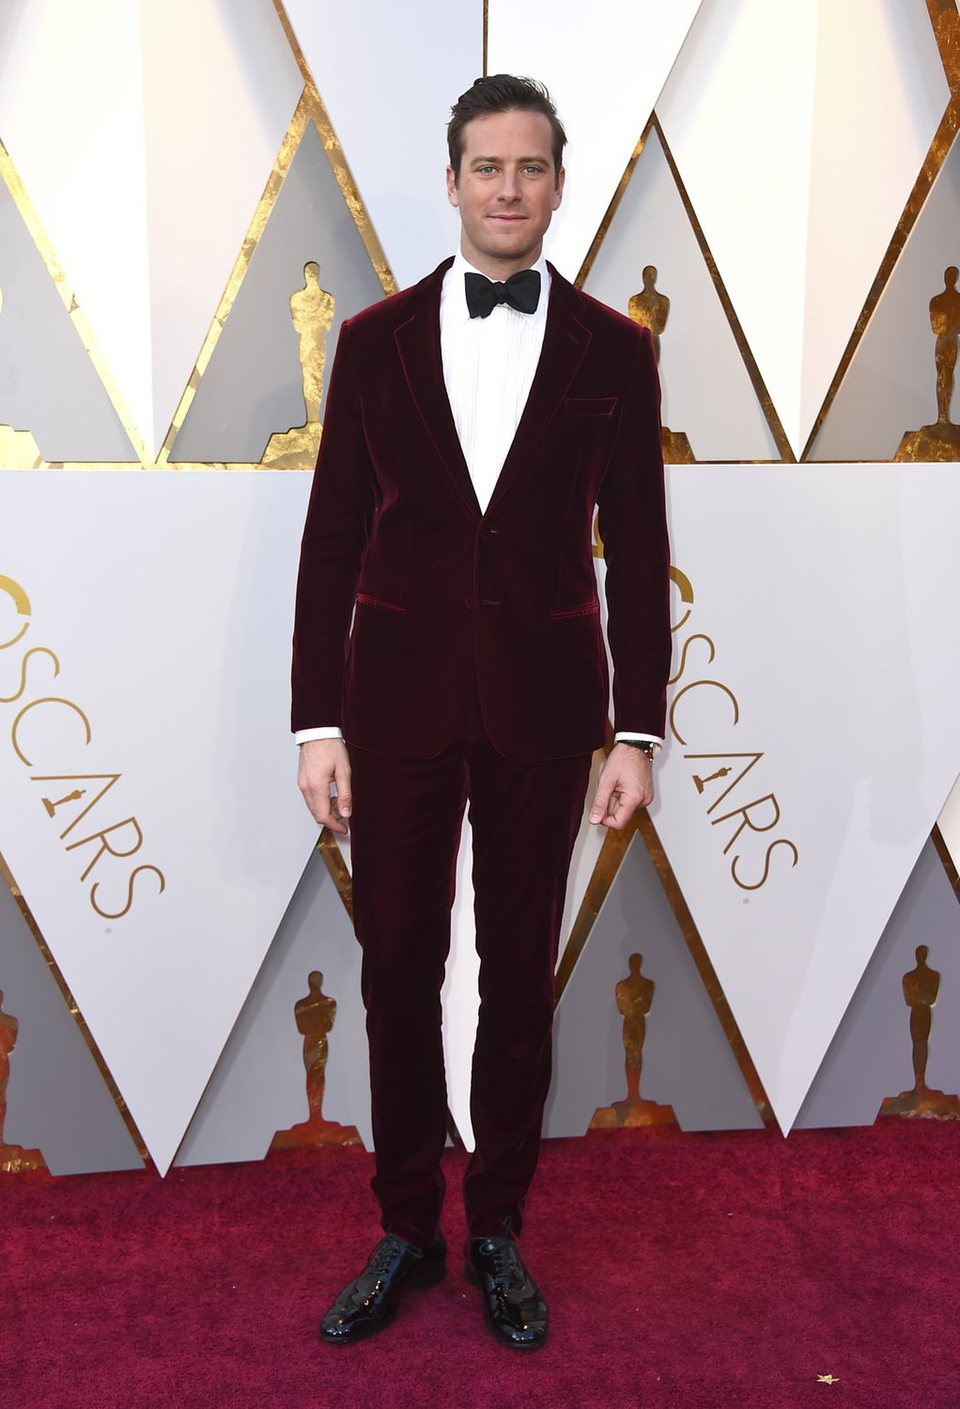 Armie Hammer at the red carpet of the Oscars